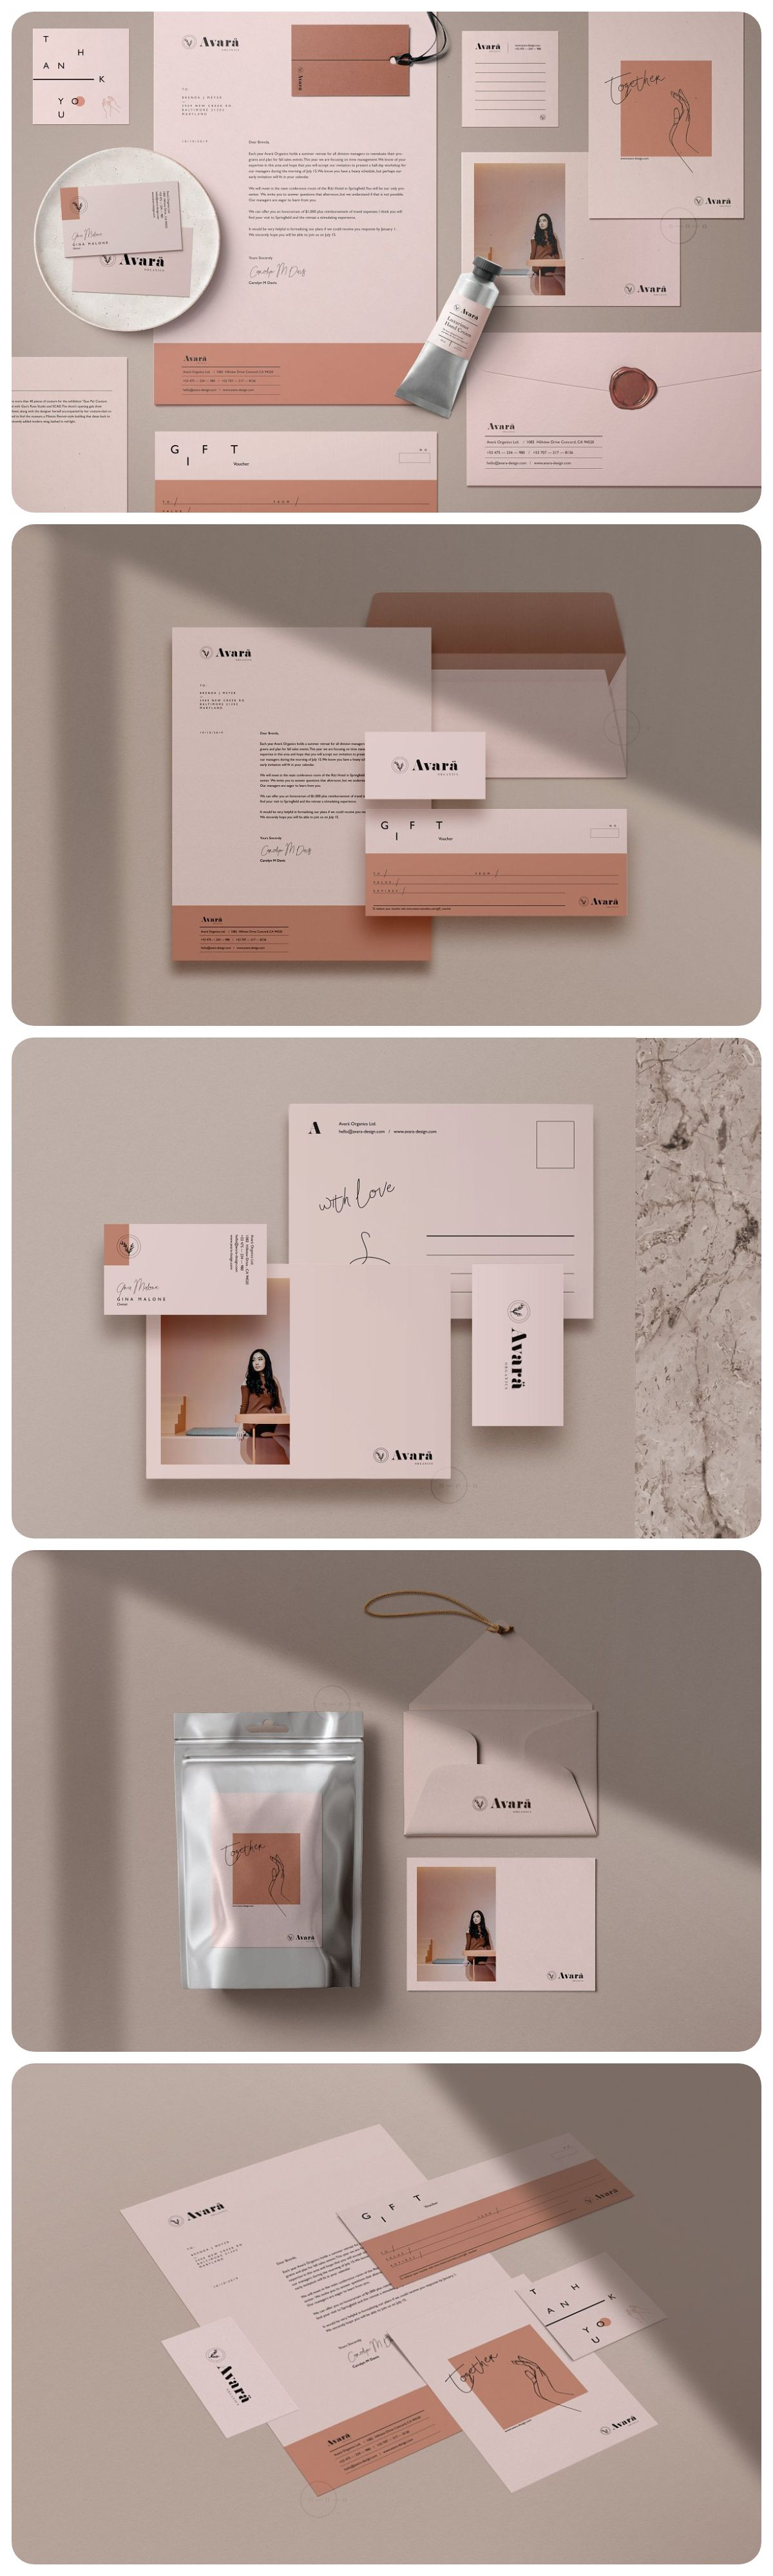 Brand Stationery Pack • Avarä (With images) Stationery